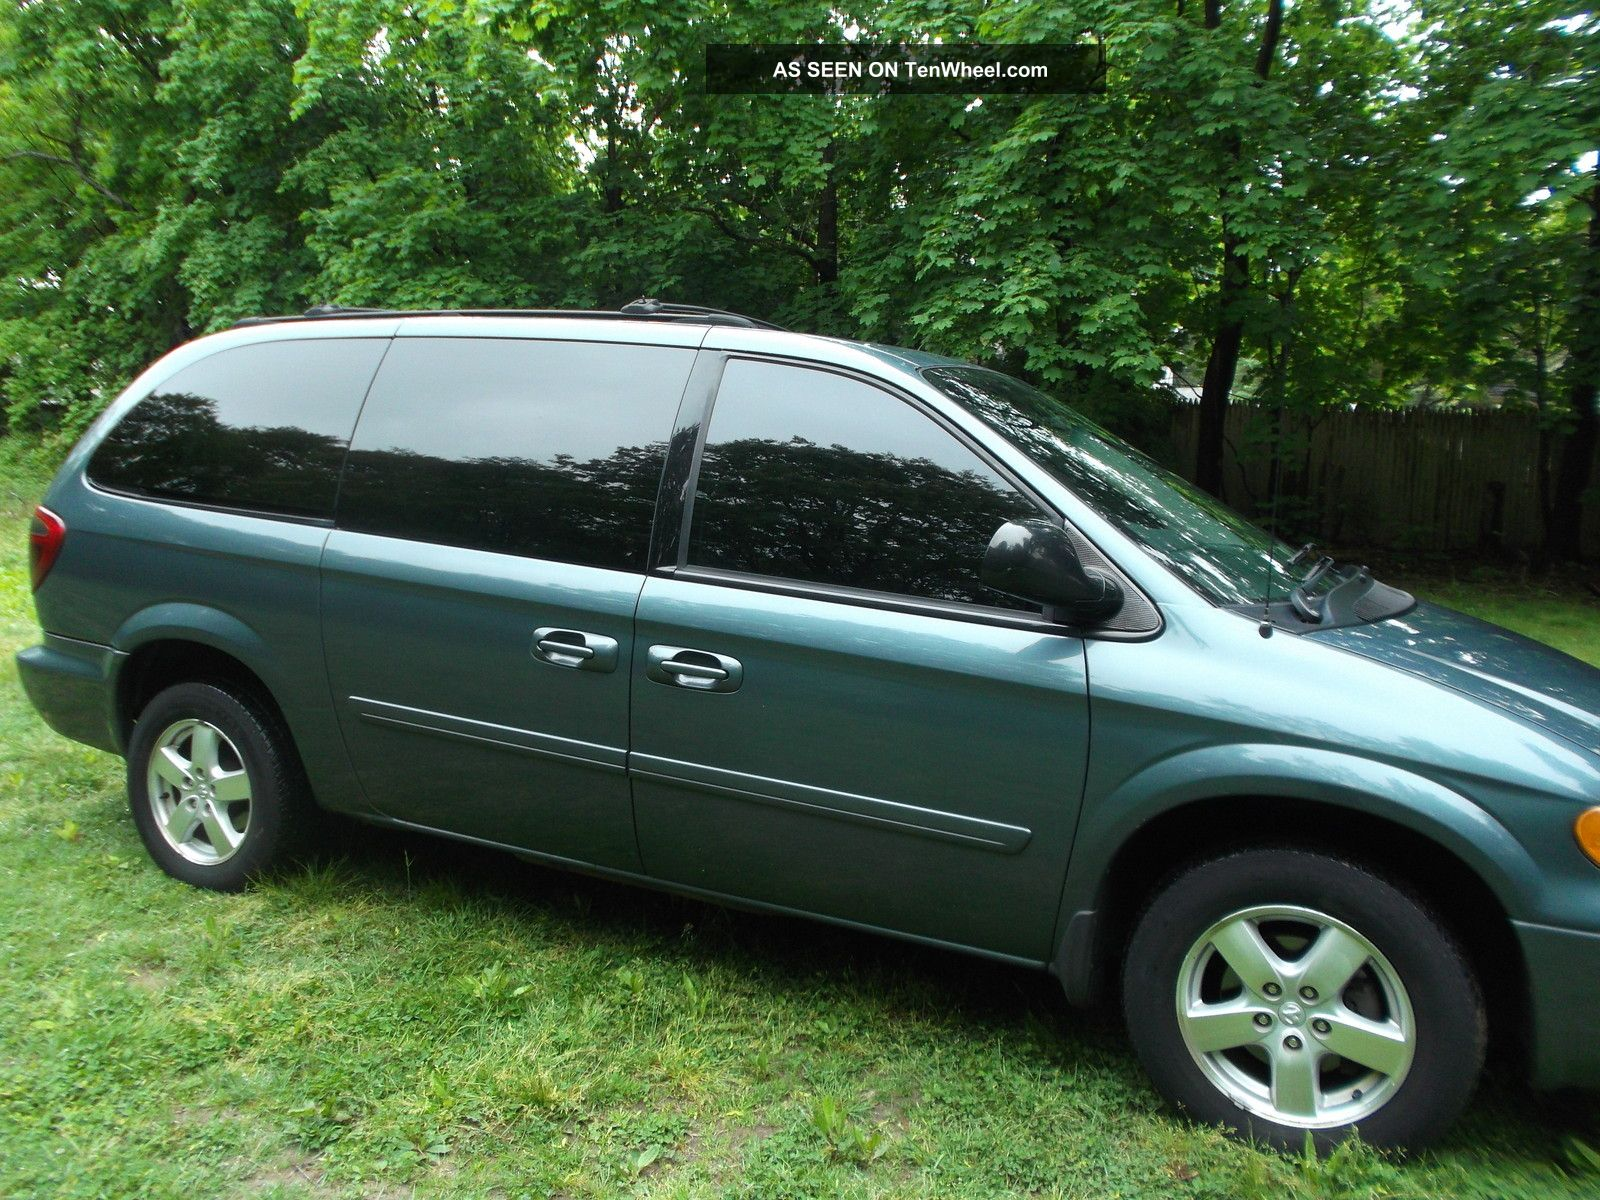 2005 dodge grand caravan sxt mini passenger van 4 door 3 8l. Black Bedroom Furniture Sets. Home Design Ideas